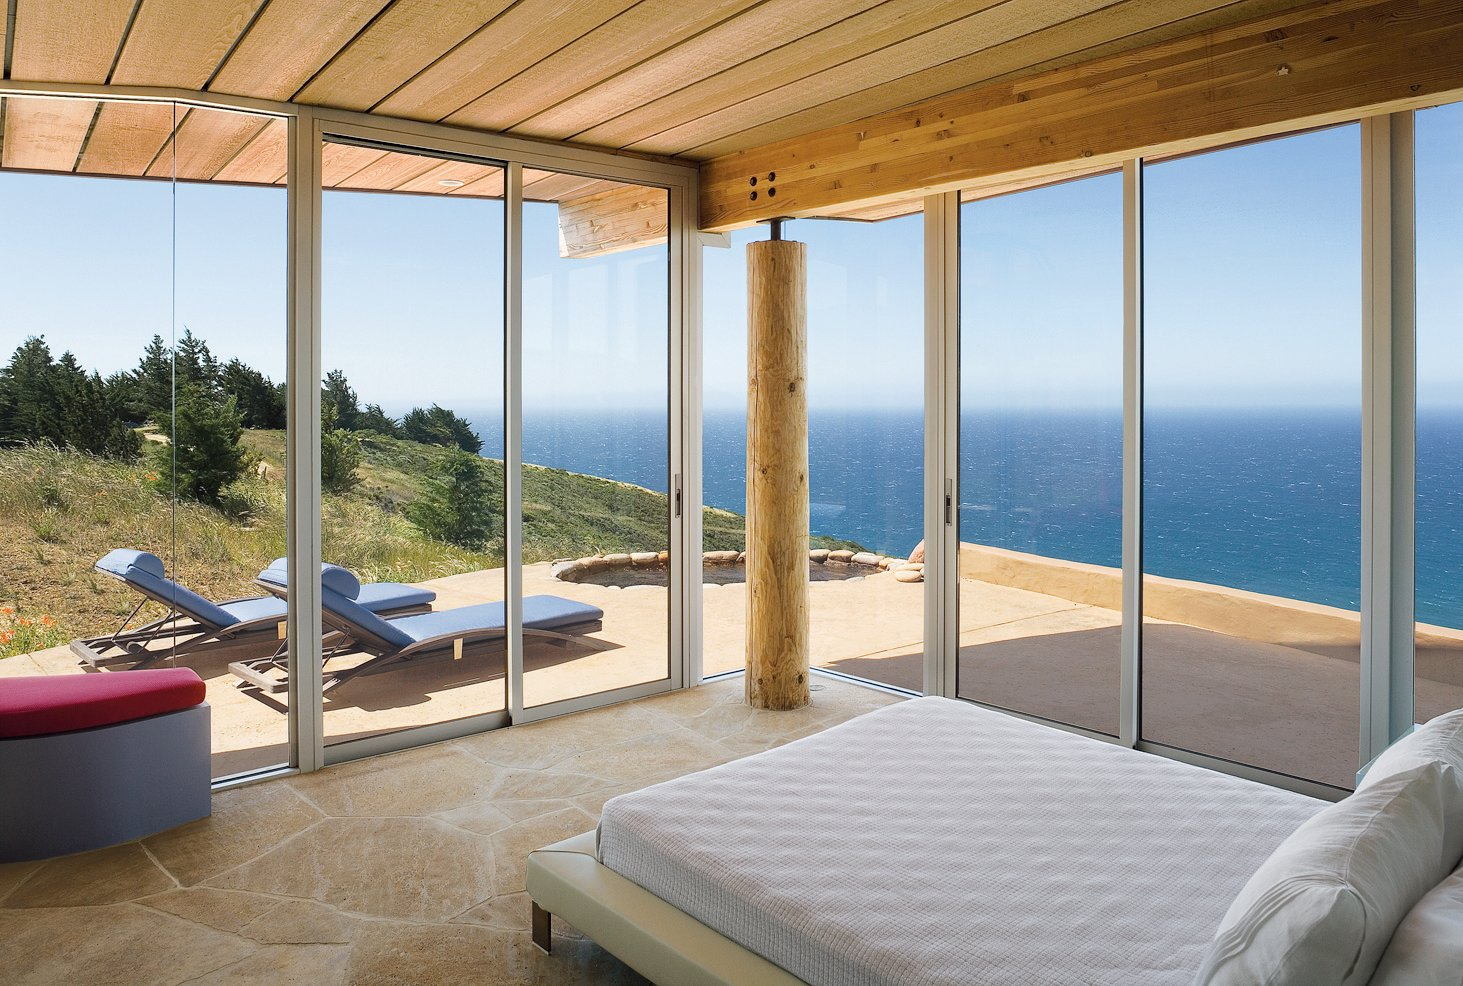 Two walls of floor-to-ceiling windows in the master bedroom frame expansive vistas of the Pacific Ocean. Tagged: Bedroom and Bed. Big Sur: Going Coastal - Photo 4 of 6